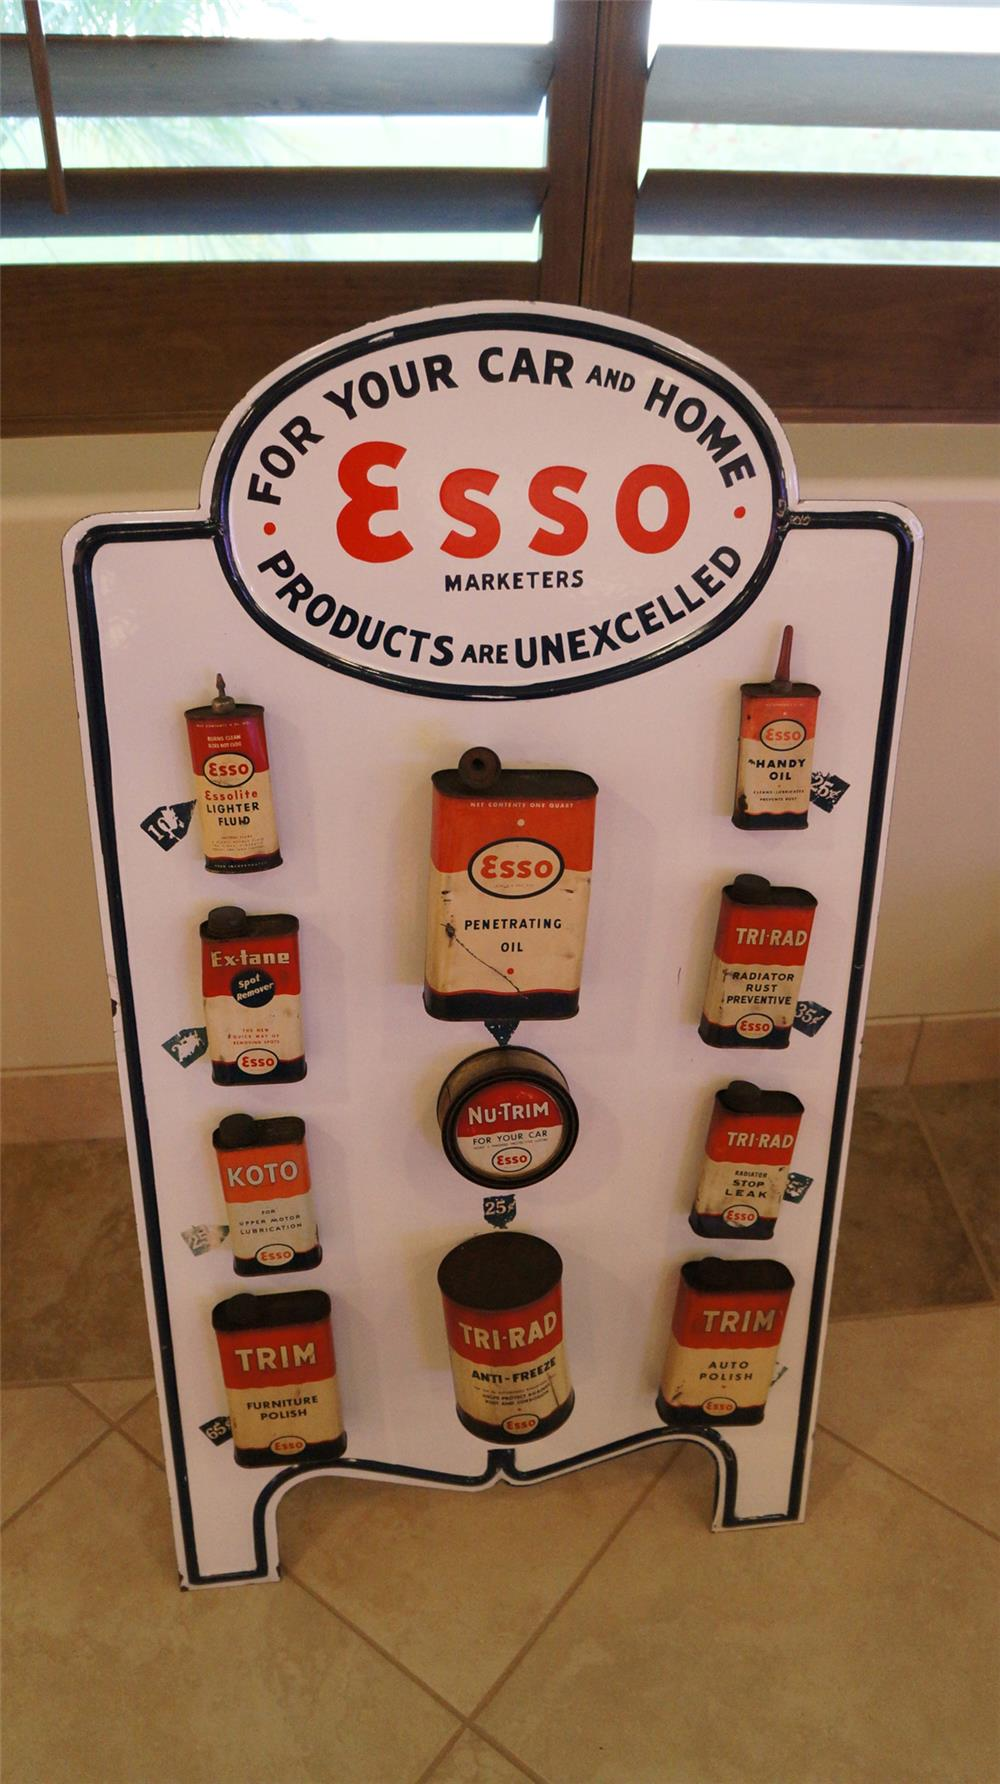 1930's Esso For Your Car and Home porcelain service station fuel island display with cans. Condition: Rack:  Excellent+  Cans: Very Good - Front 3/4 - 179160